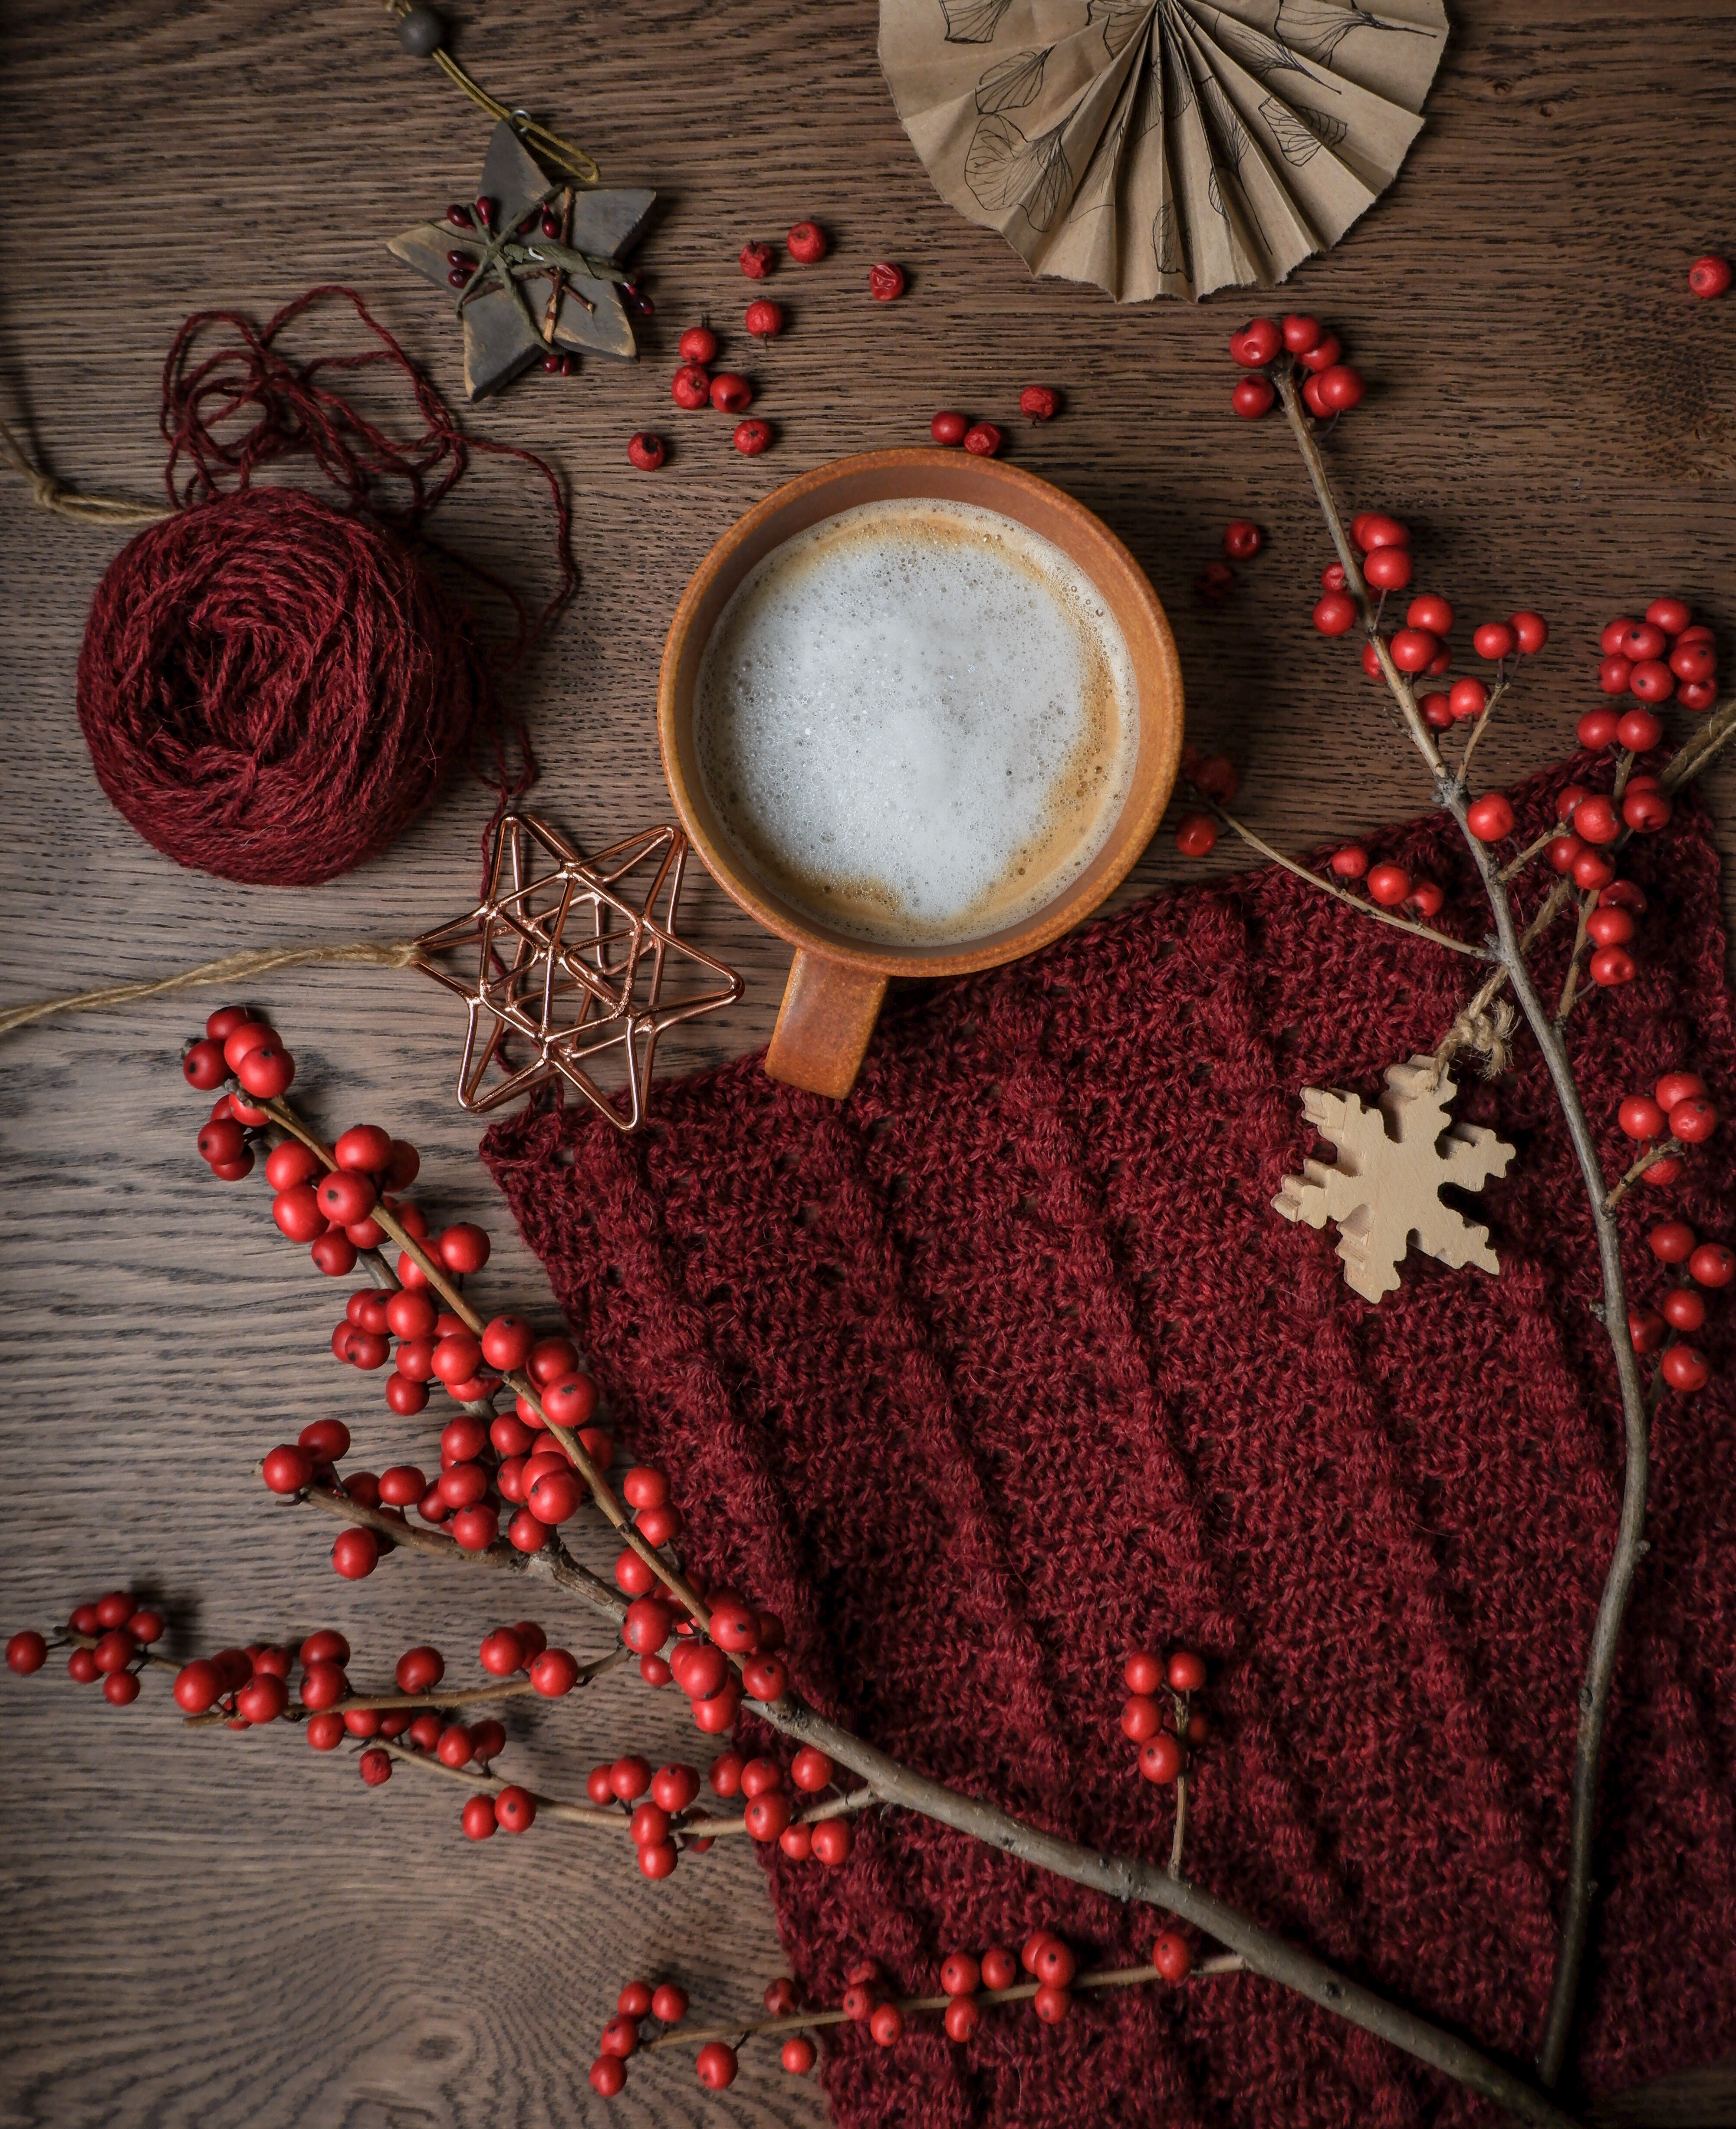 79289 download wallpaper Food, Cup, Mug, Coffee, Branches, Berries screensavers and pictures for free